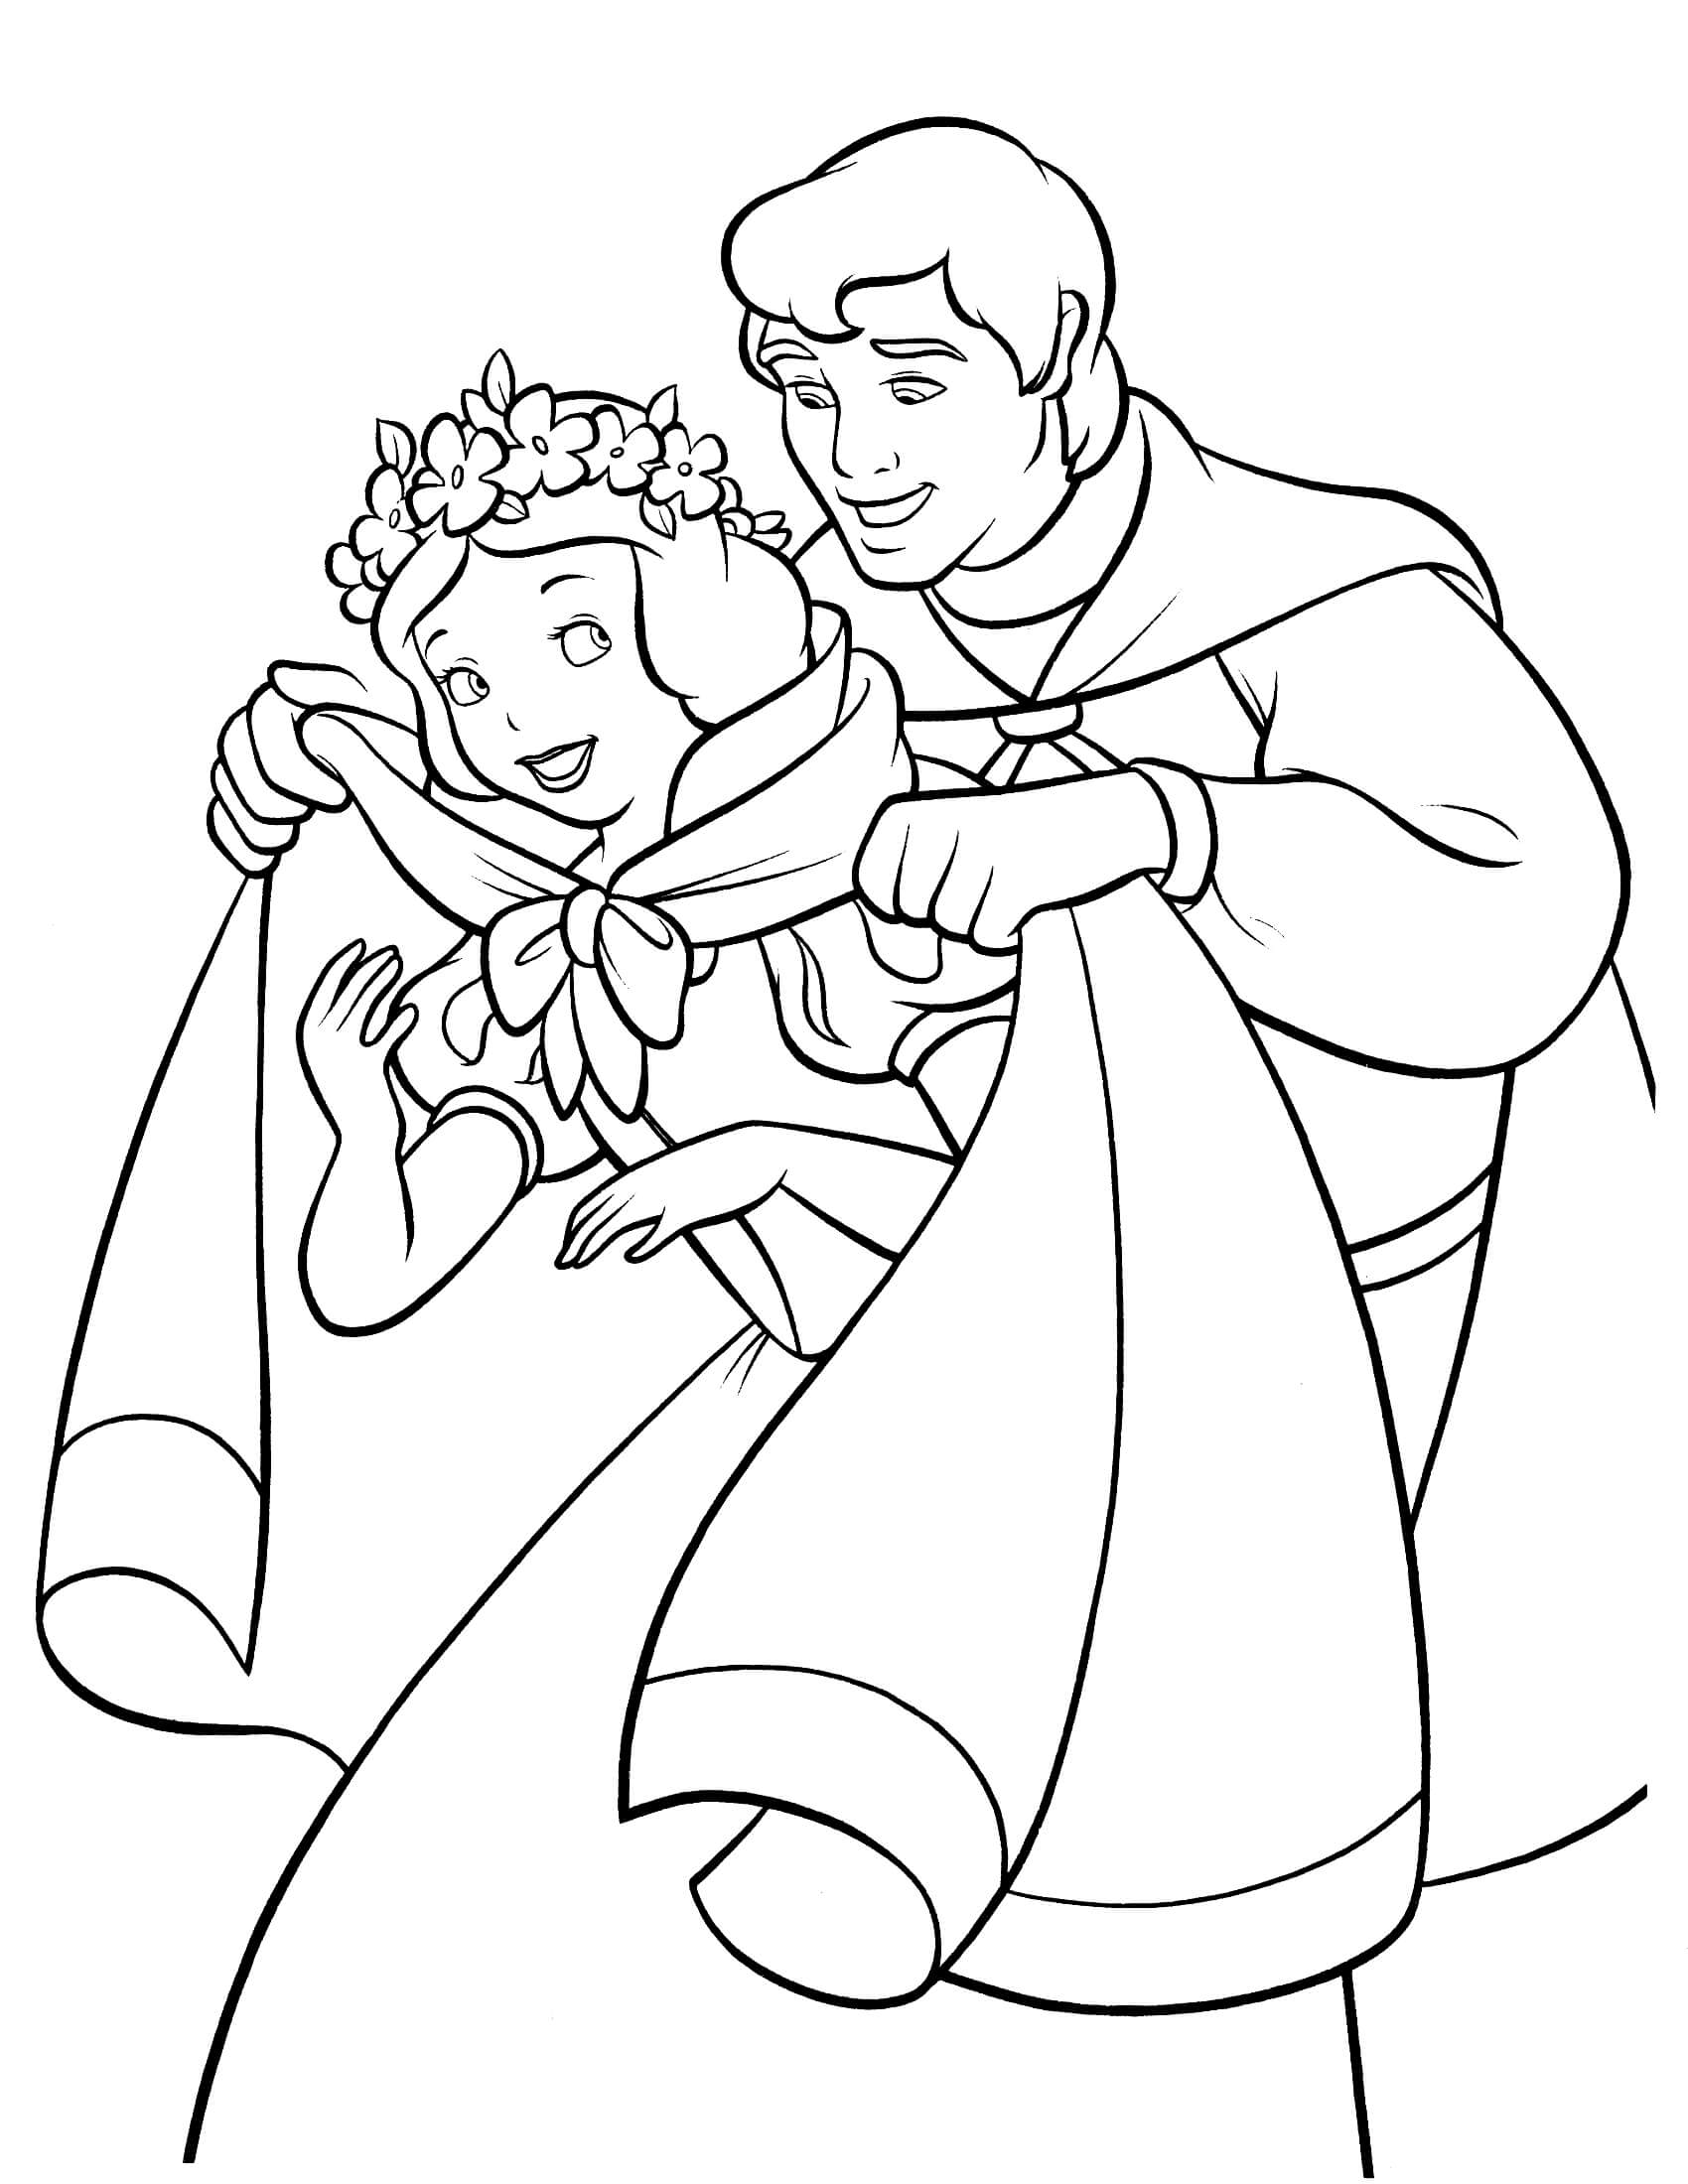 Snow white coloring pages best coloring pages for kids Coloring book